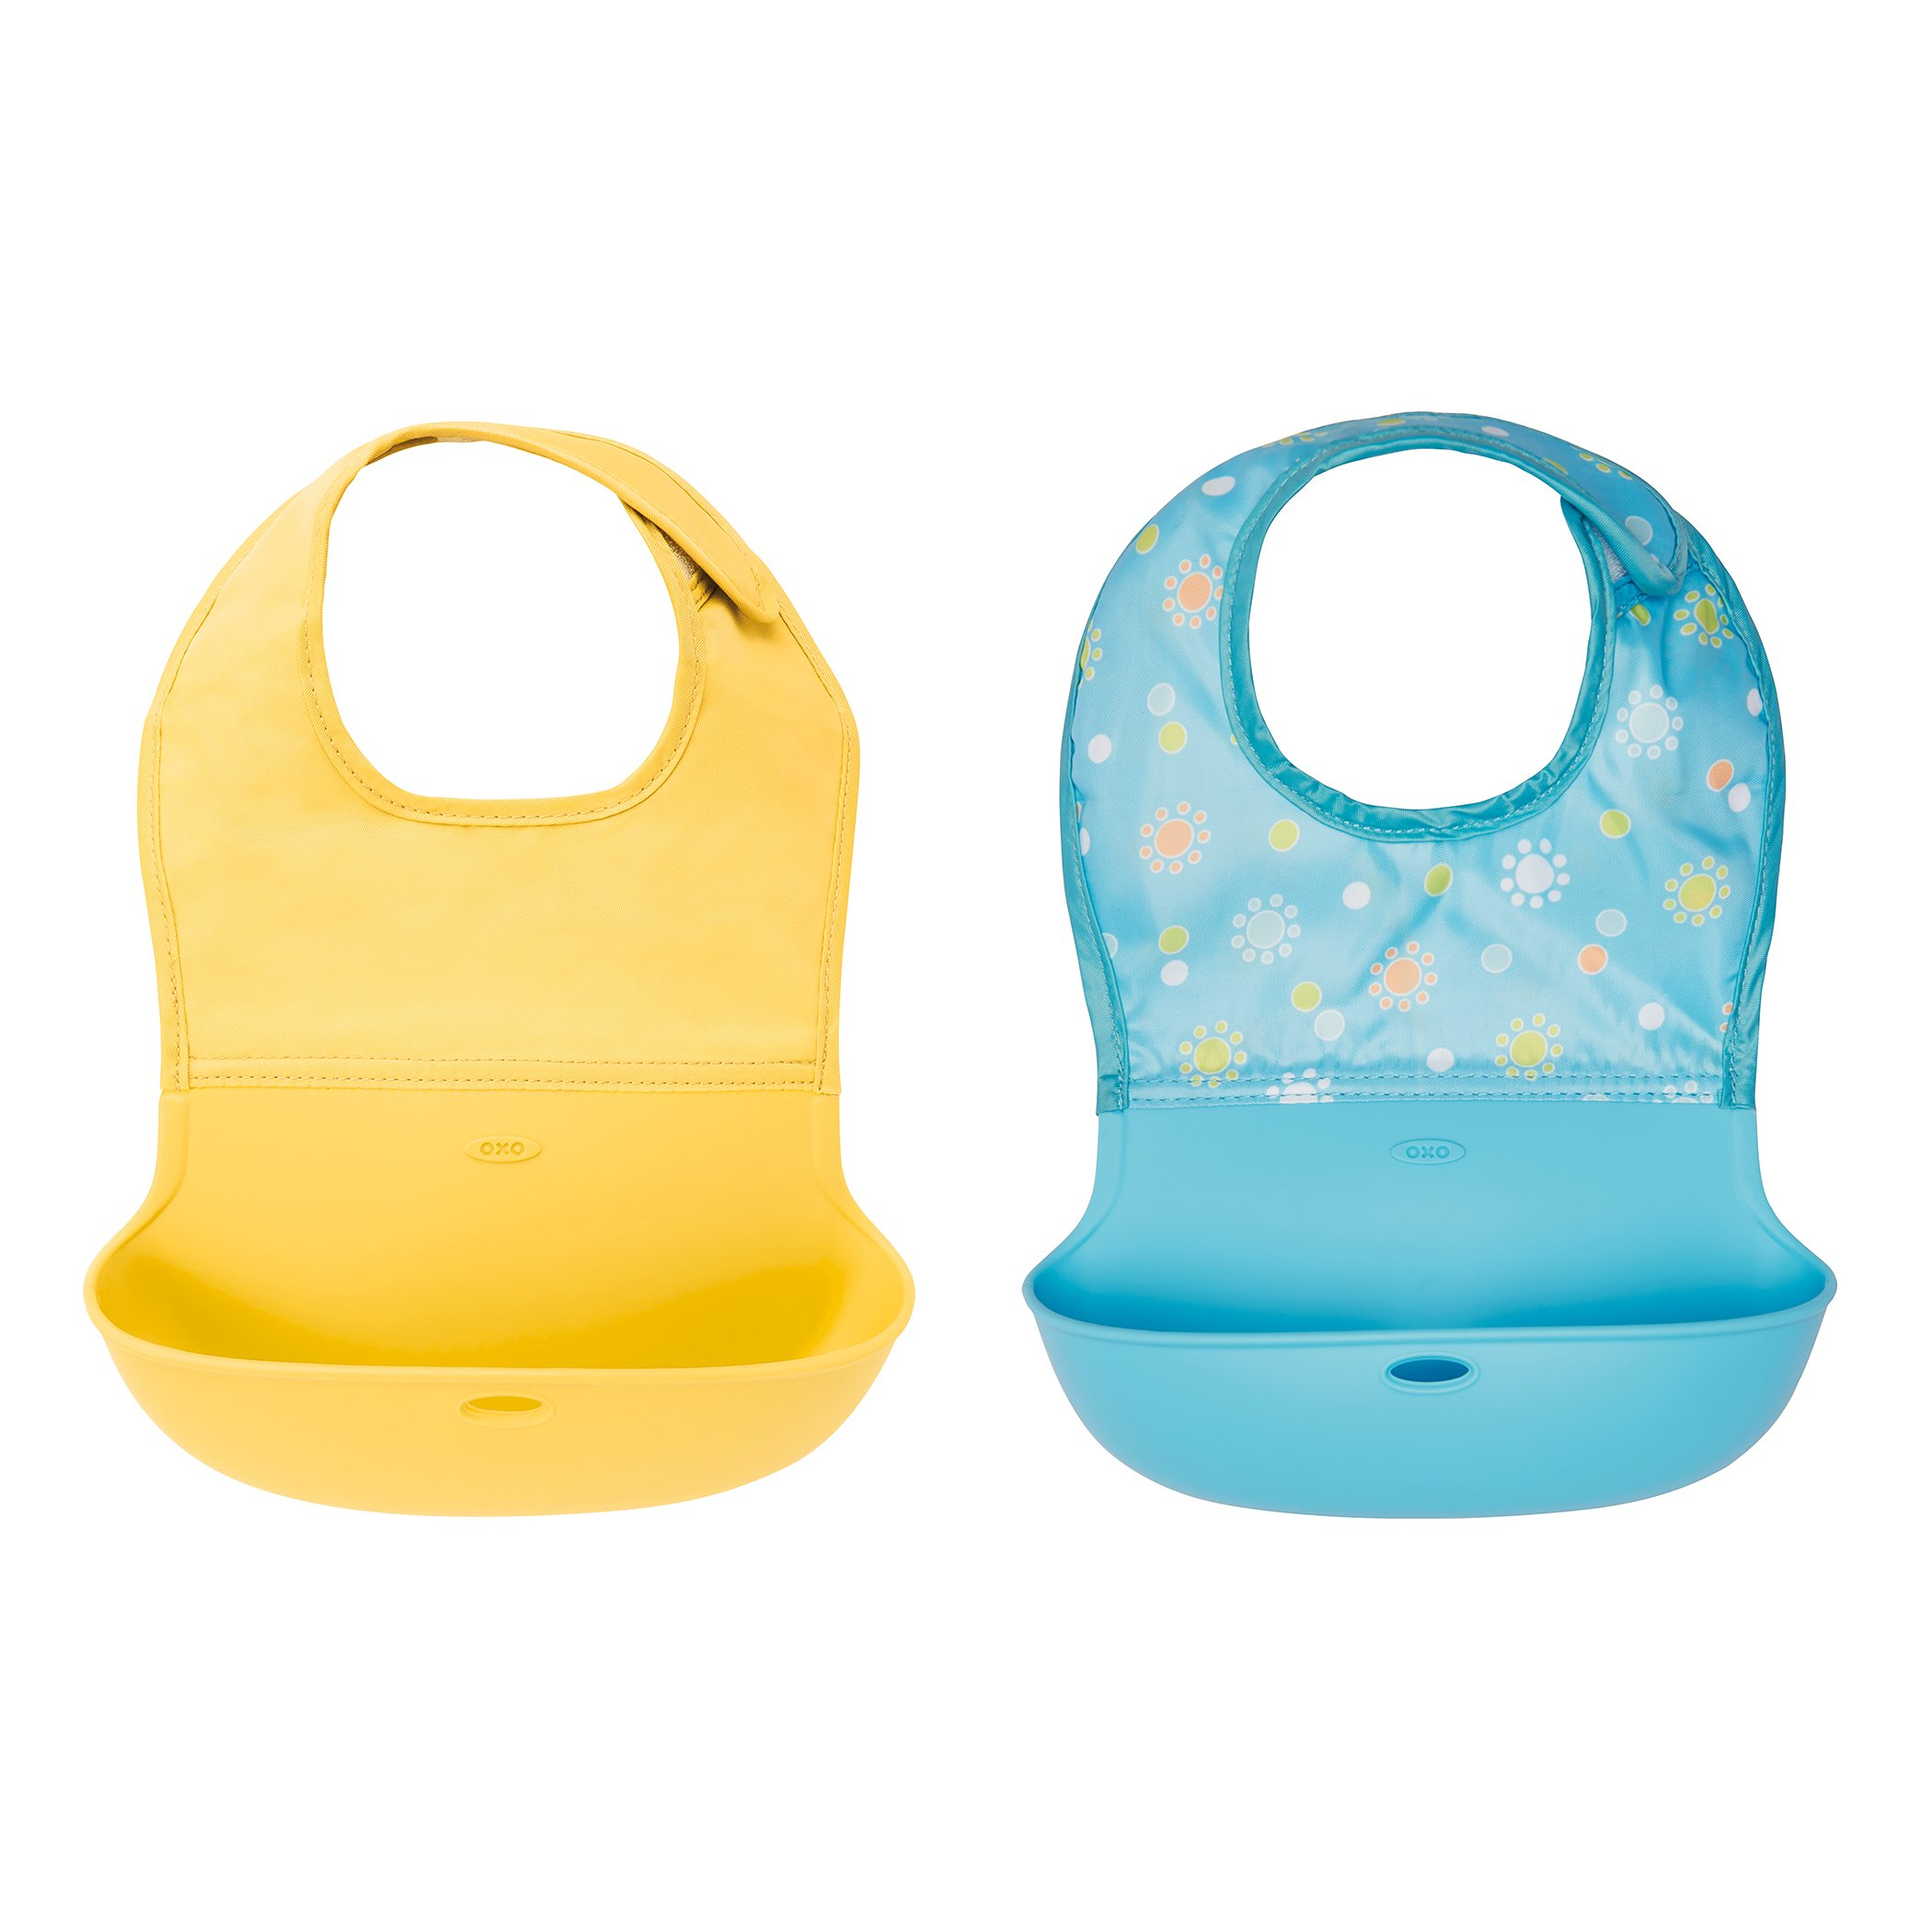 OXO TOT Waterproof Silicone Roll up Bib with Comfort-Fit Fabric Neck, 2 Pack, Yellow/Aqua Pattern